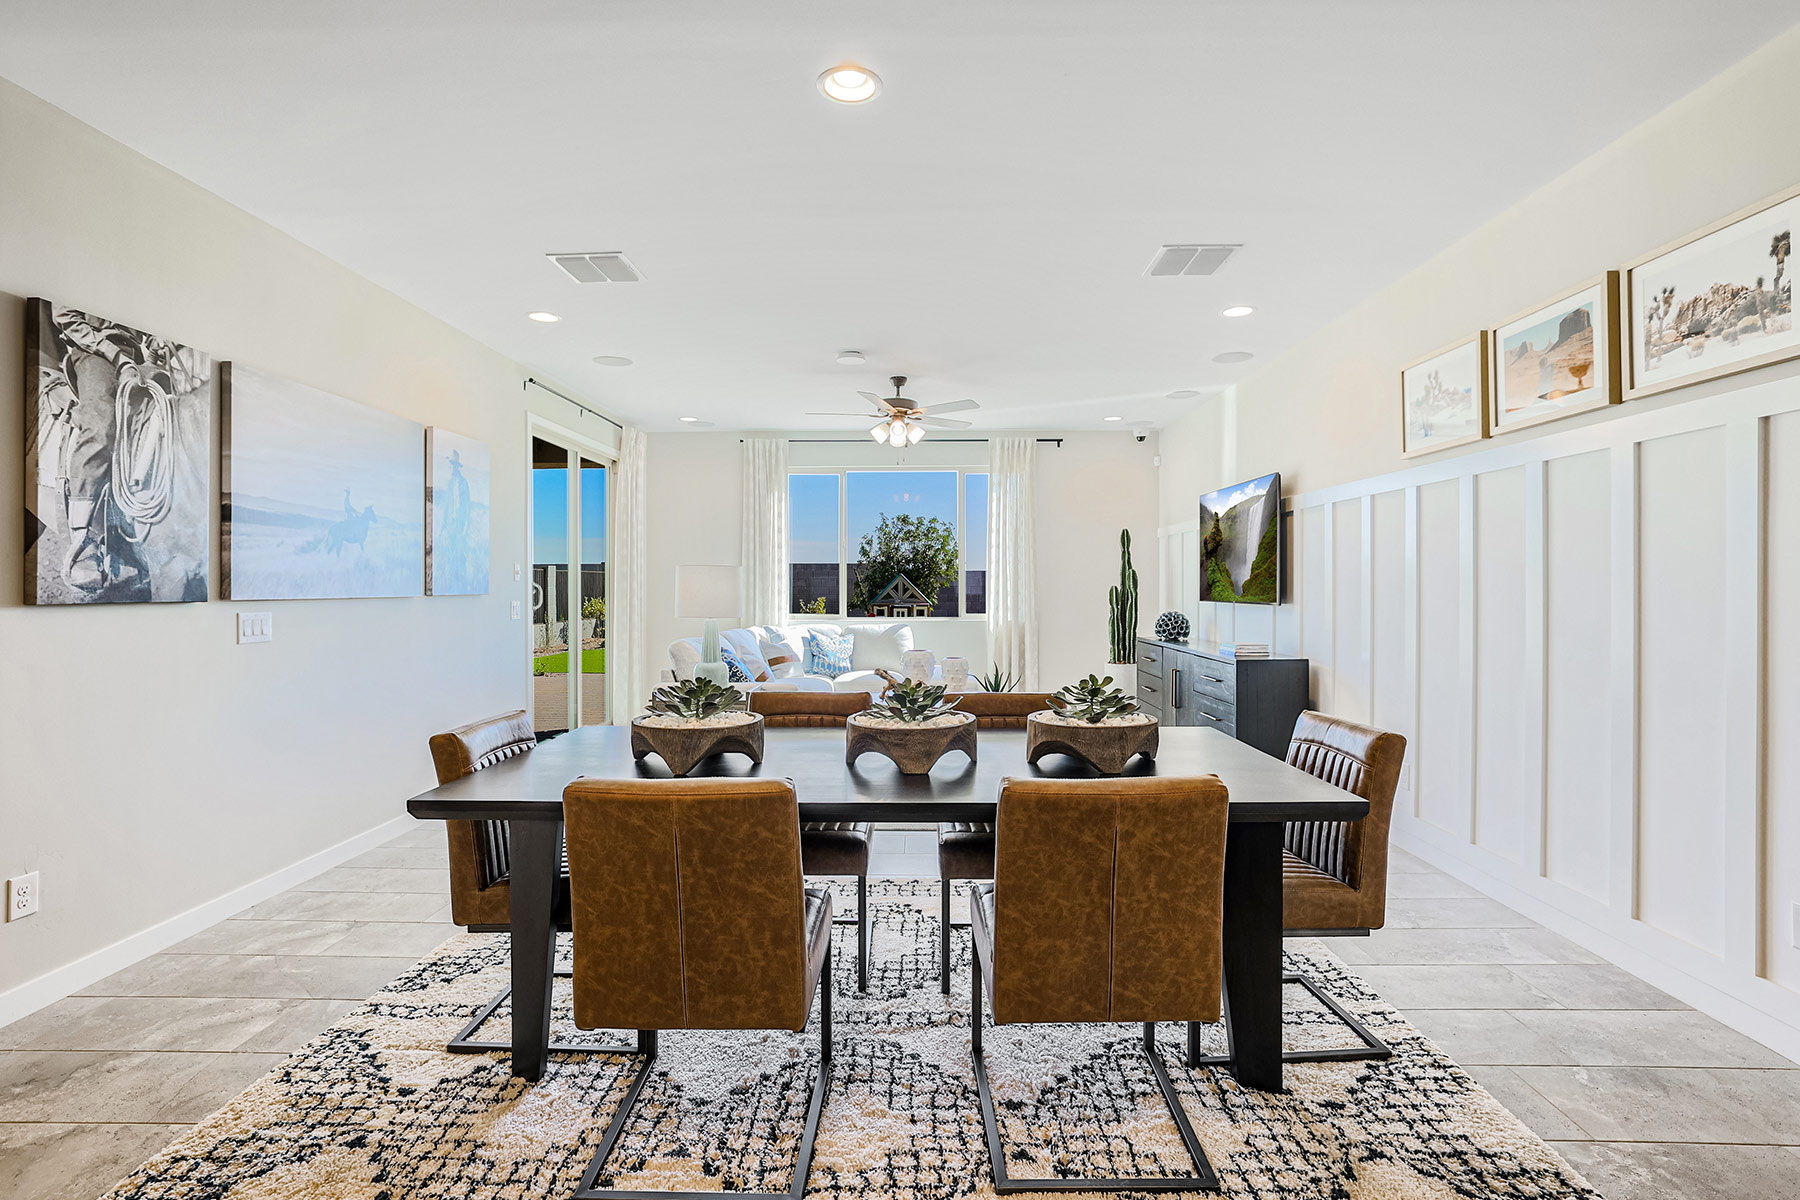 Aries Plan Dining at Azure Canyon in Litchfield Park Arizona by Mattamy Homes